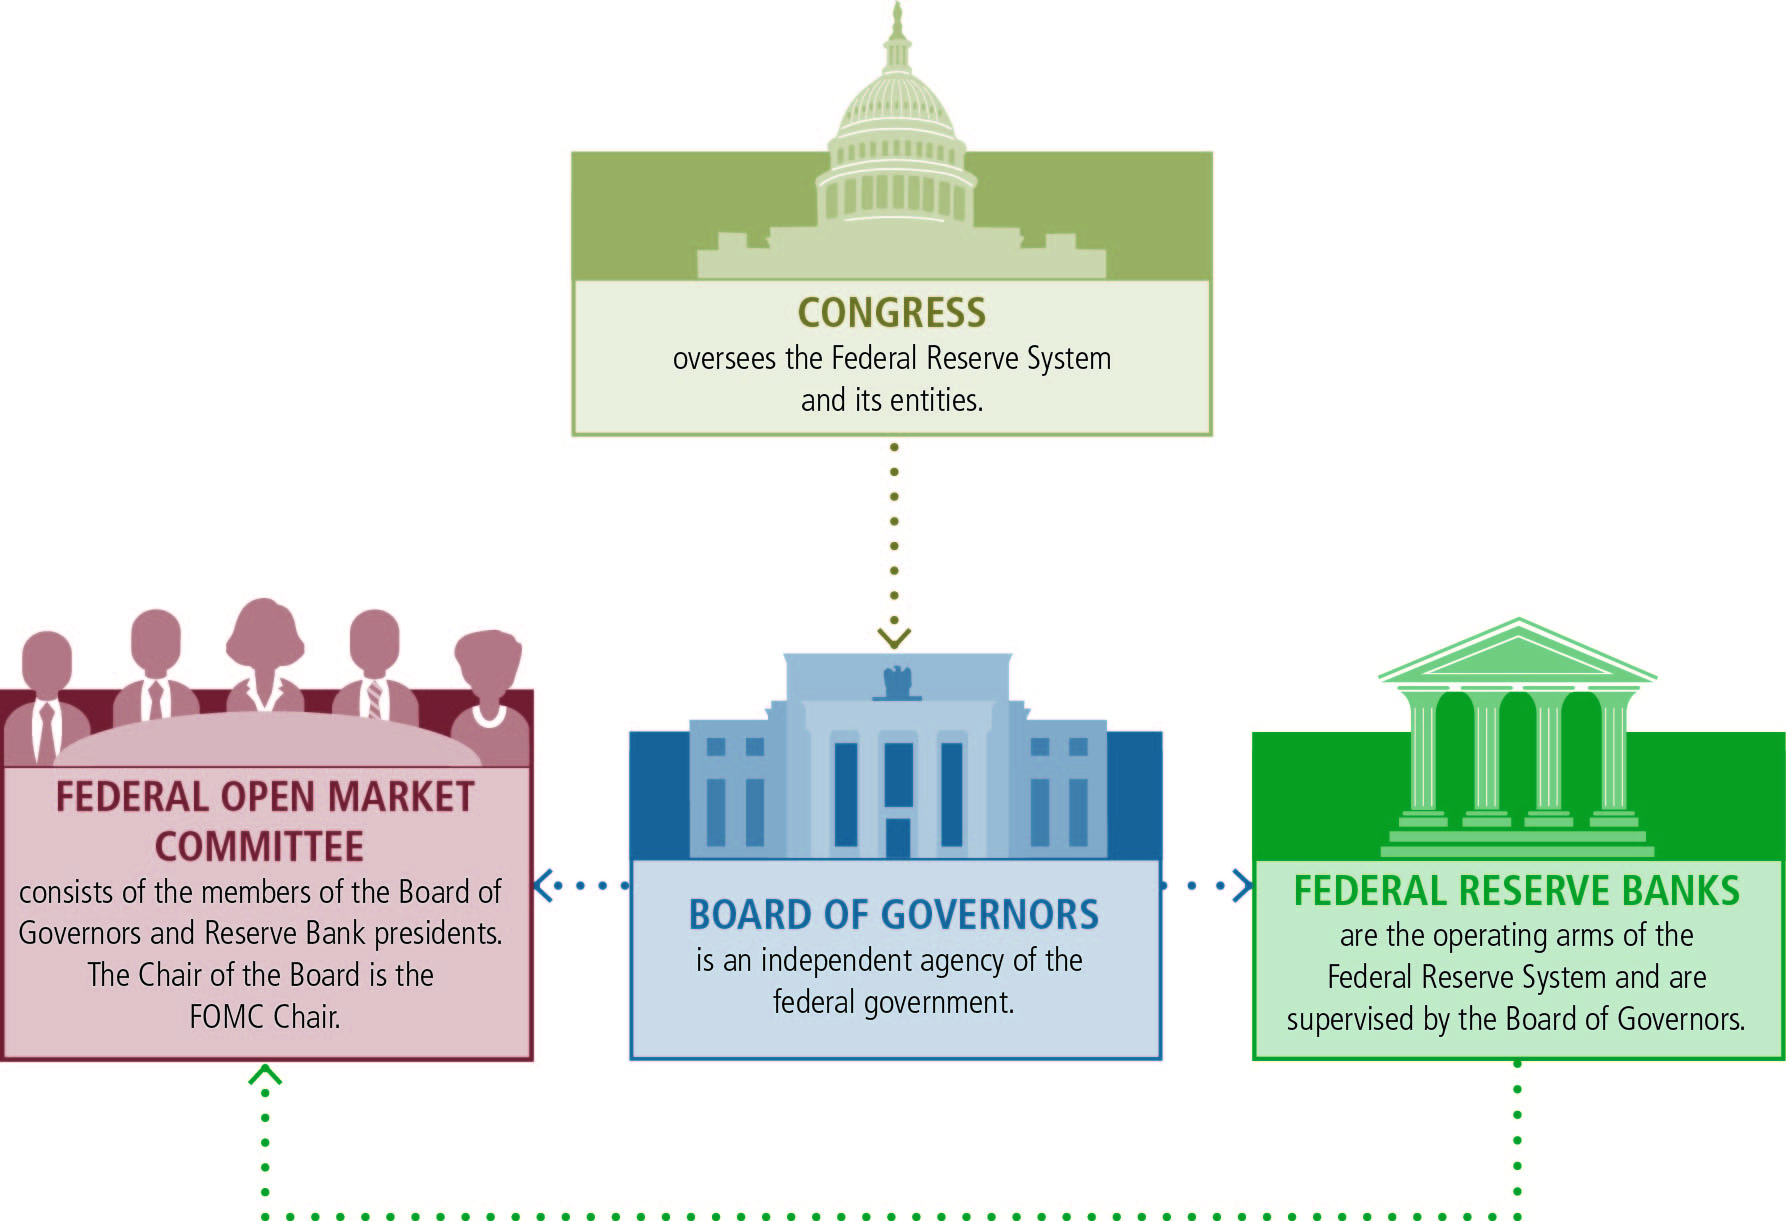 Federal Reserve Board - Structure of the Federal Reserve System